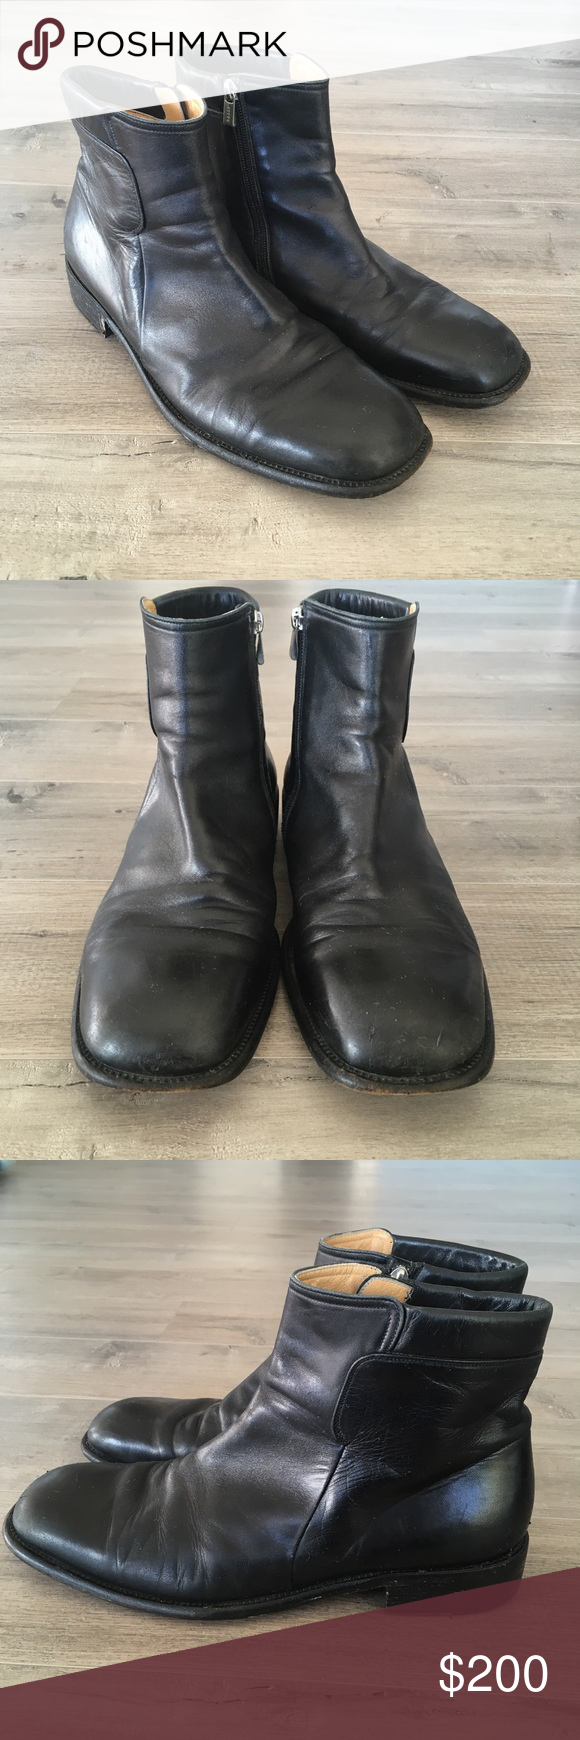 Pre-owned - Black Leather Boots Bally amH2E